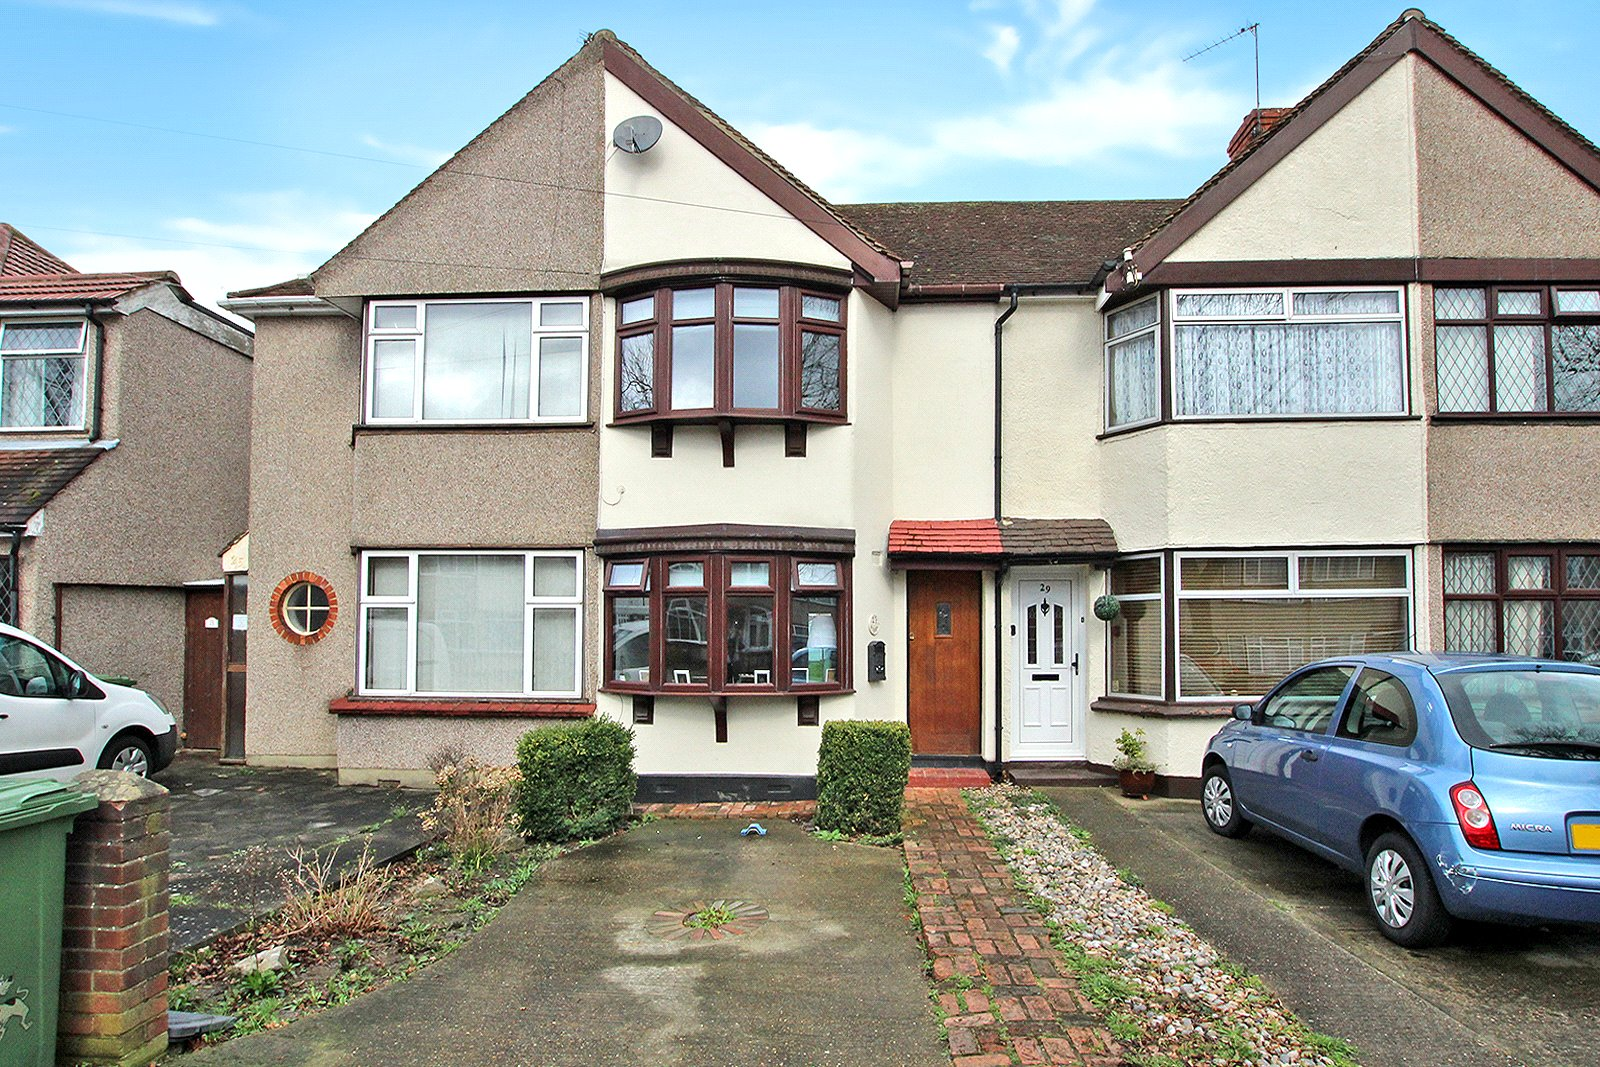 Harborough Avenue, Blackfen, Sidcup, DA15